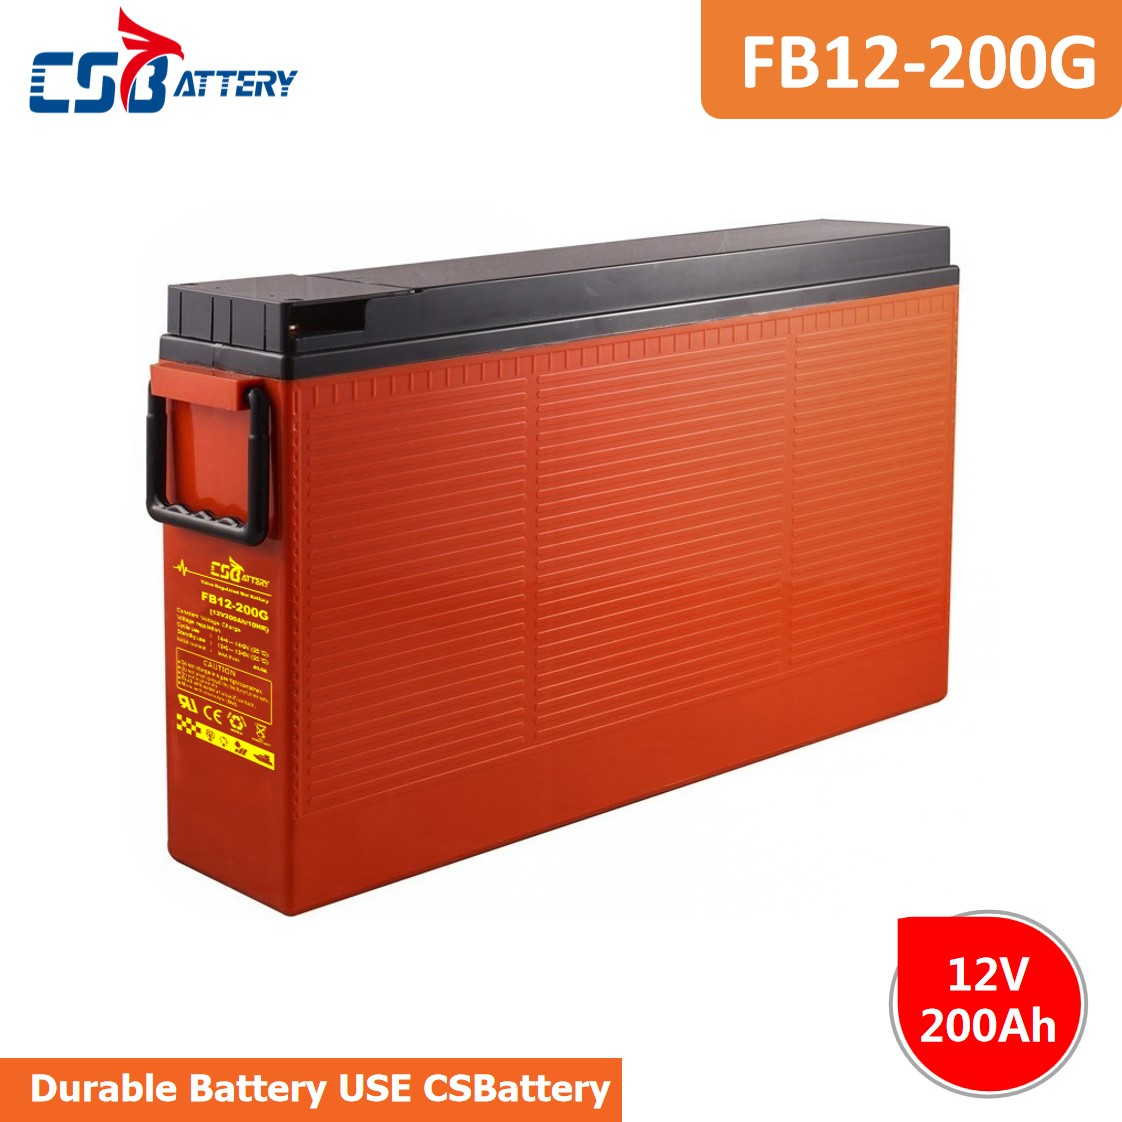 Csbattery 12V 200ah Front Access VRLA Battery for Solar